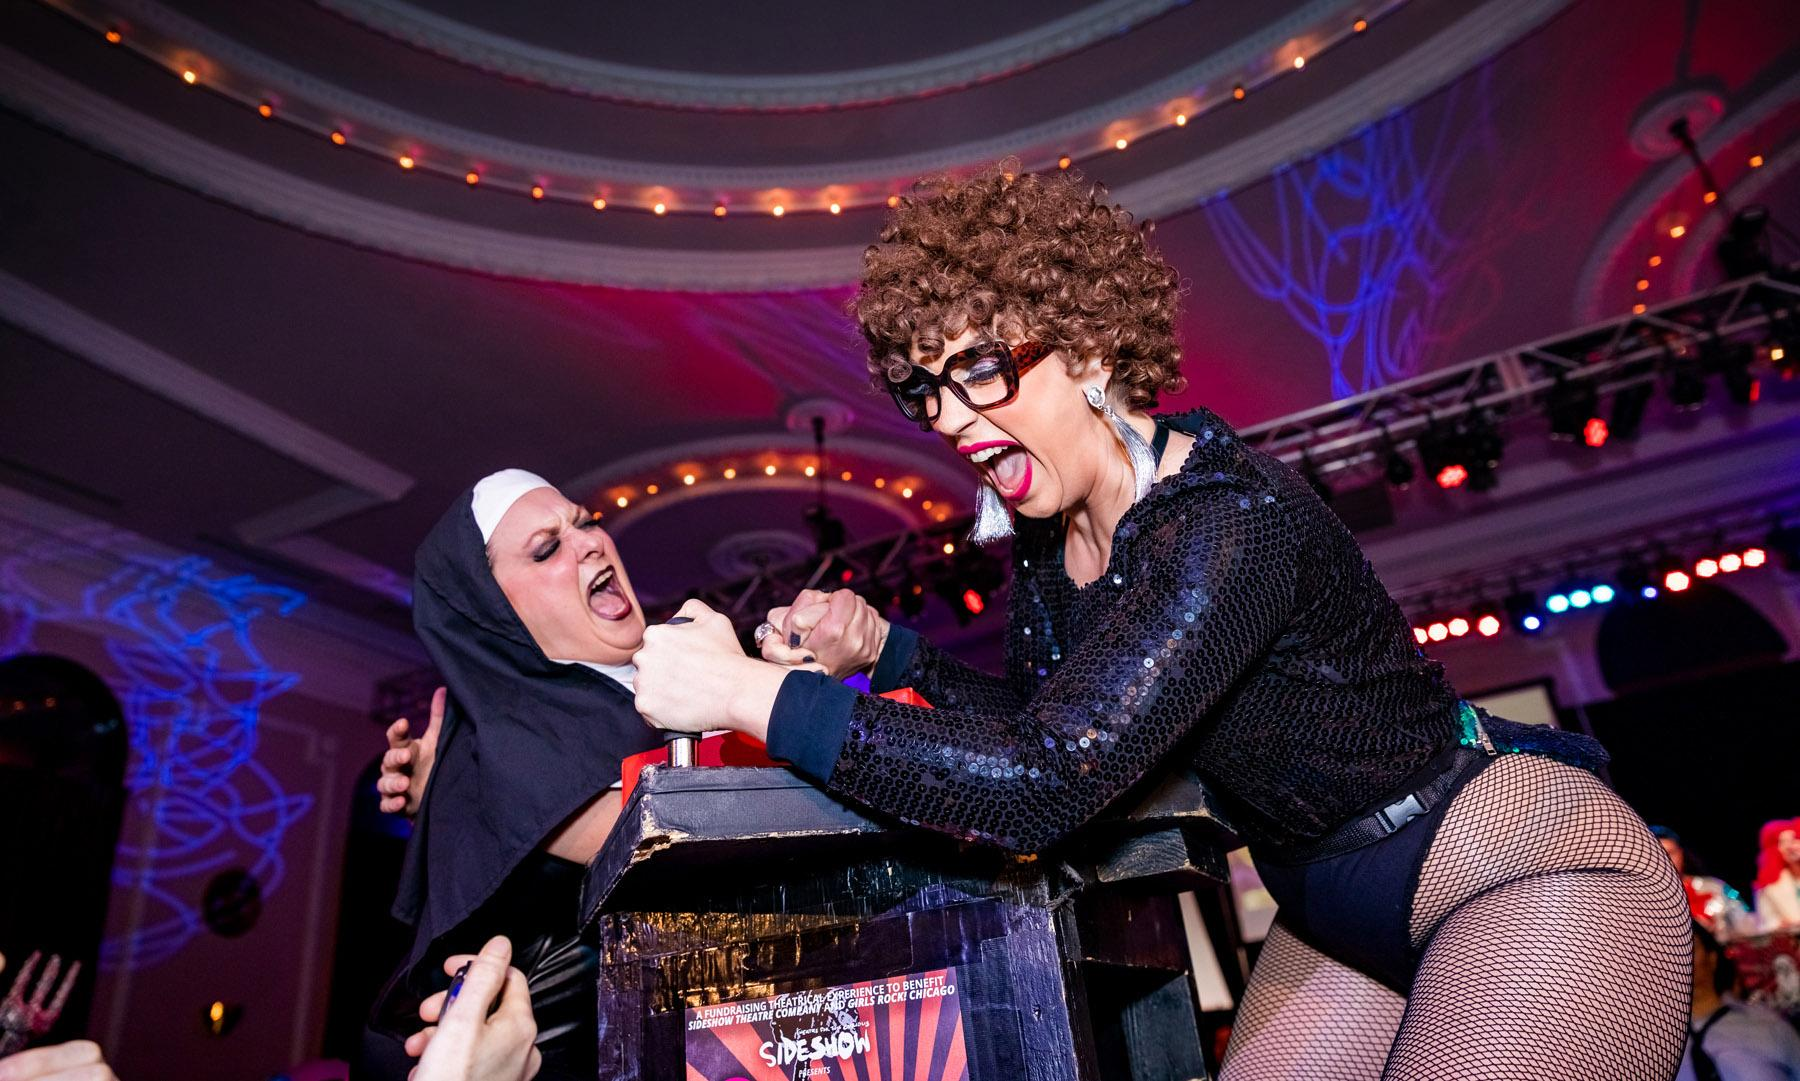 Sister Frida Rage (left) vs. Aunt Nance at The Chicago League of Lady Arm Wrestlers' 34th match CLLAW XXXIV: Good vs. Evil at Logan Square Auditorium. (Photo by Trainman Photography)